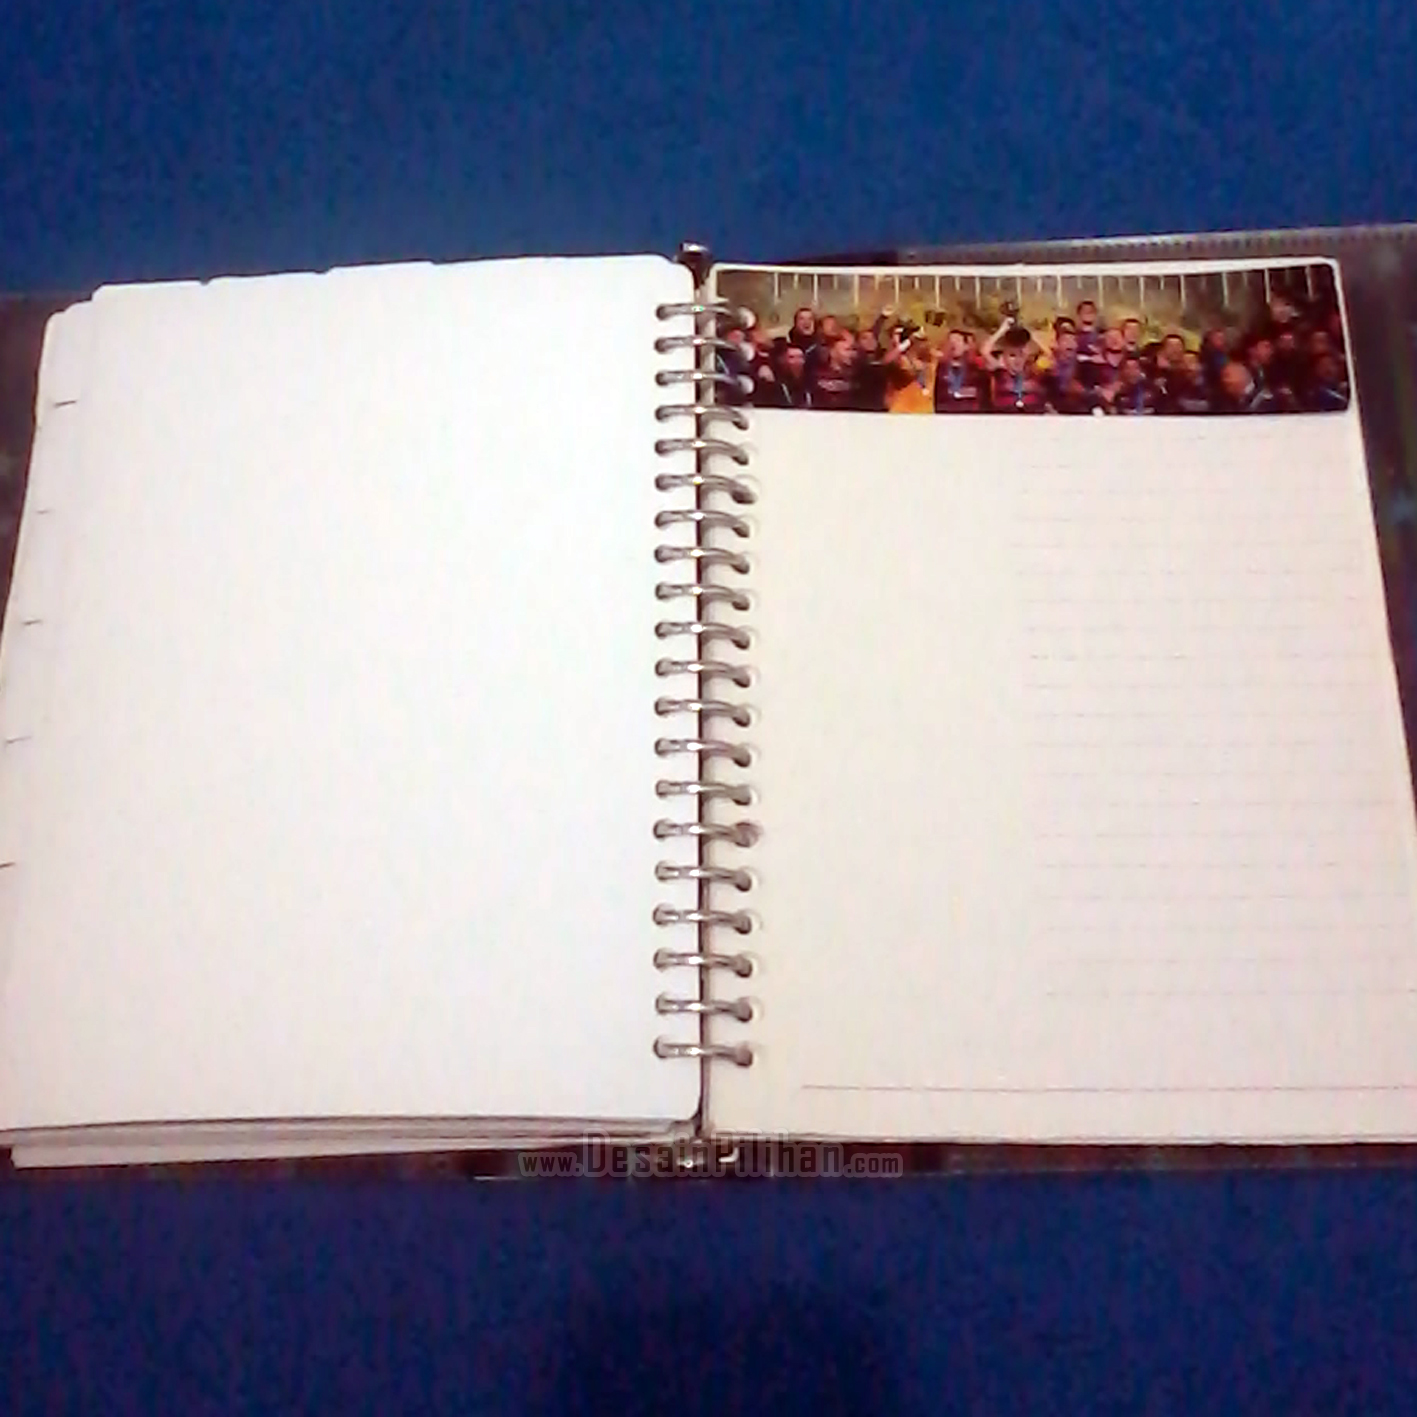 RULER DIVIDER BINDER CUSTOM, PENGGARIS BINDER FOOTBALL CLUB, PEMBATAS BINDER BARCELONA